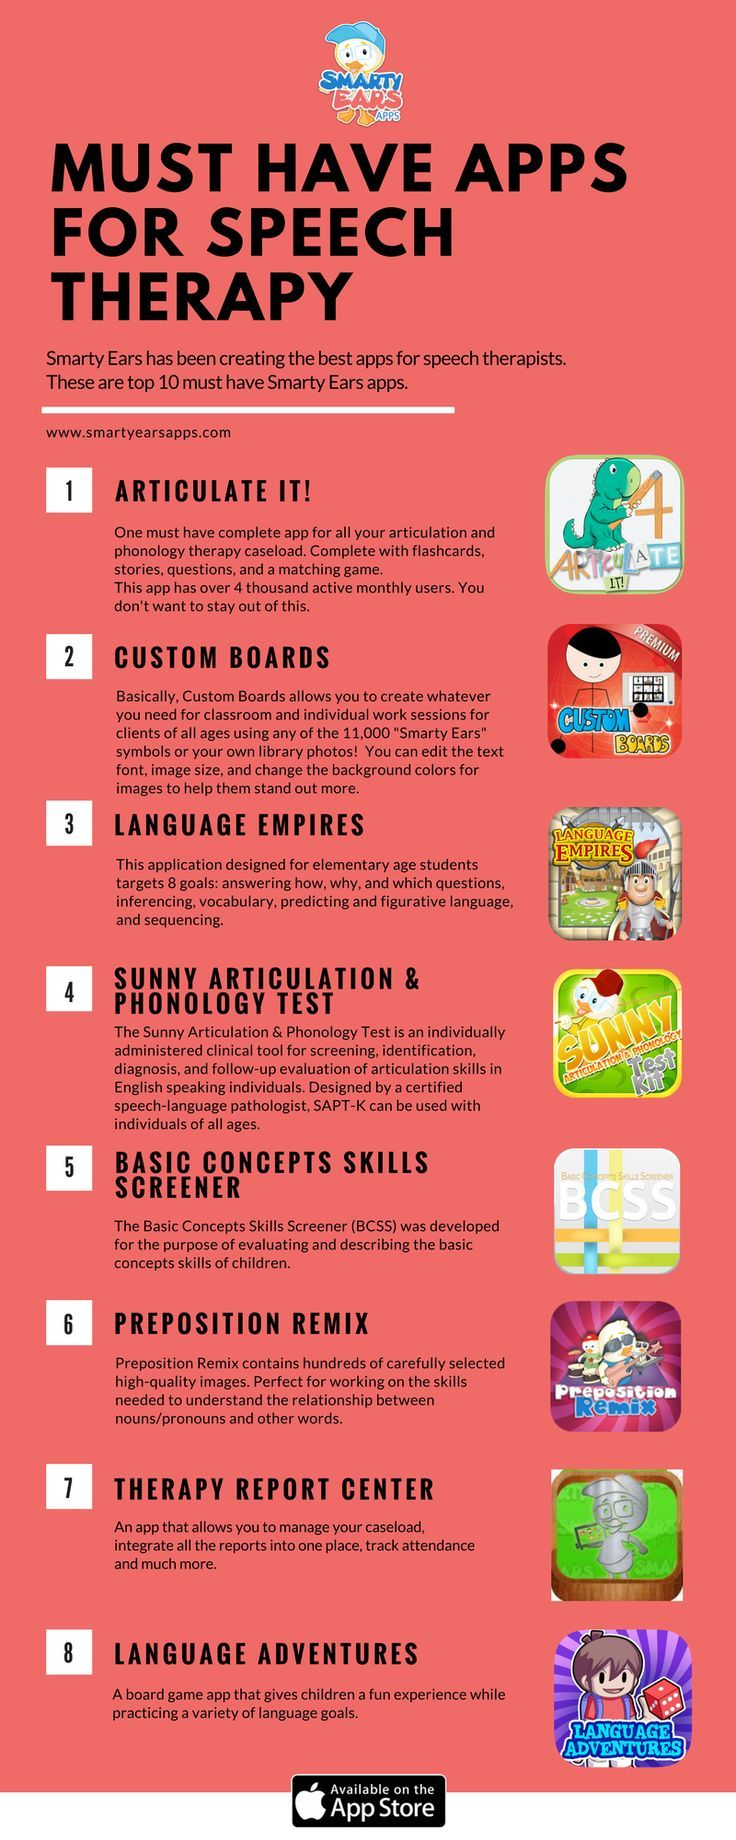 Free Printable Time Telling Worksheets Word  Best Resources For Asdan Images On Pinterest  Studentcentered  Monroe Doctrine Worksheet Pdf with Maths Worksheet Year 3 Excel Checkout These Must Have Apps For Speech Therapy Worksheets On Prepositions For Grade 5 Word